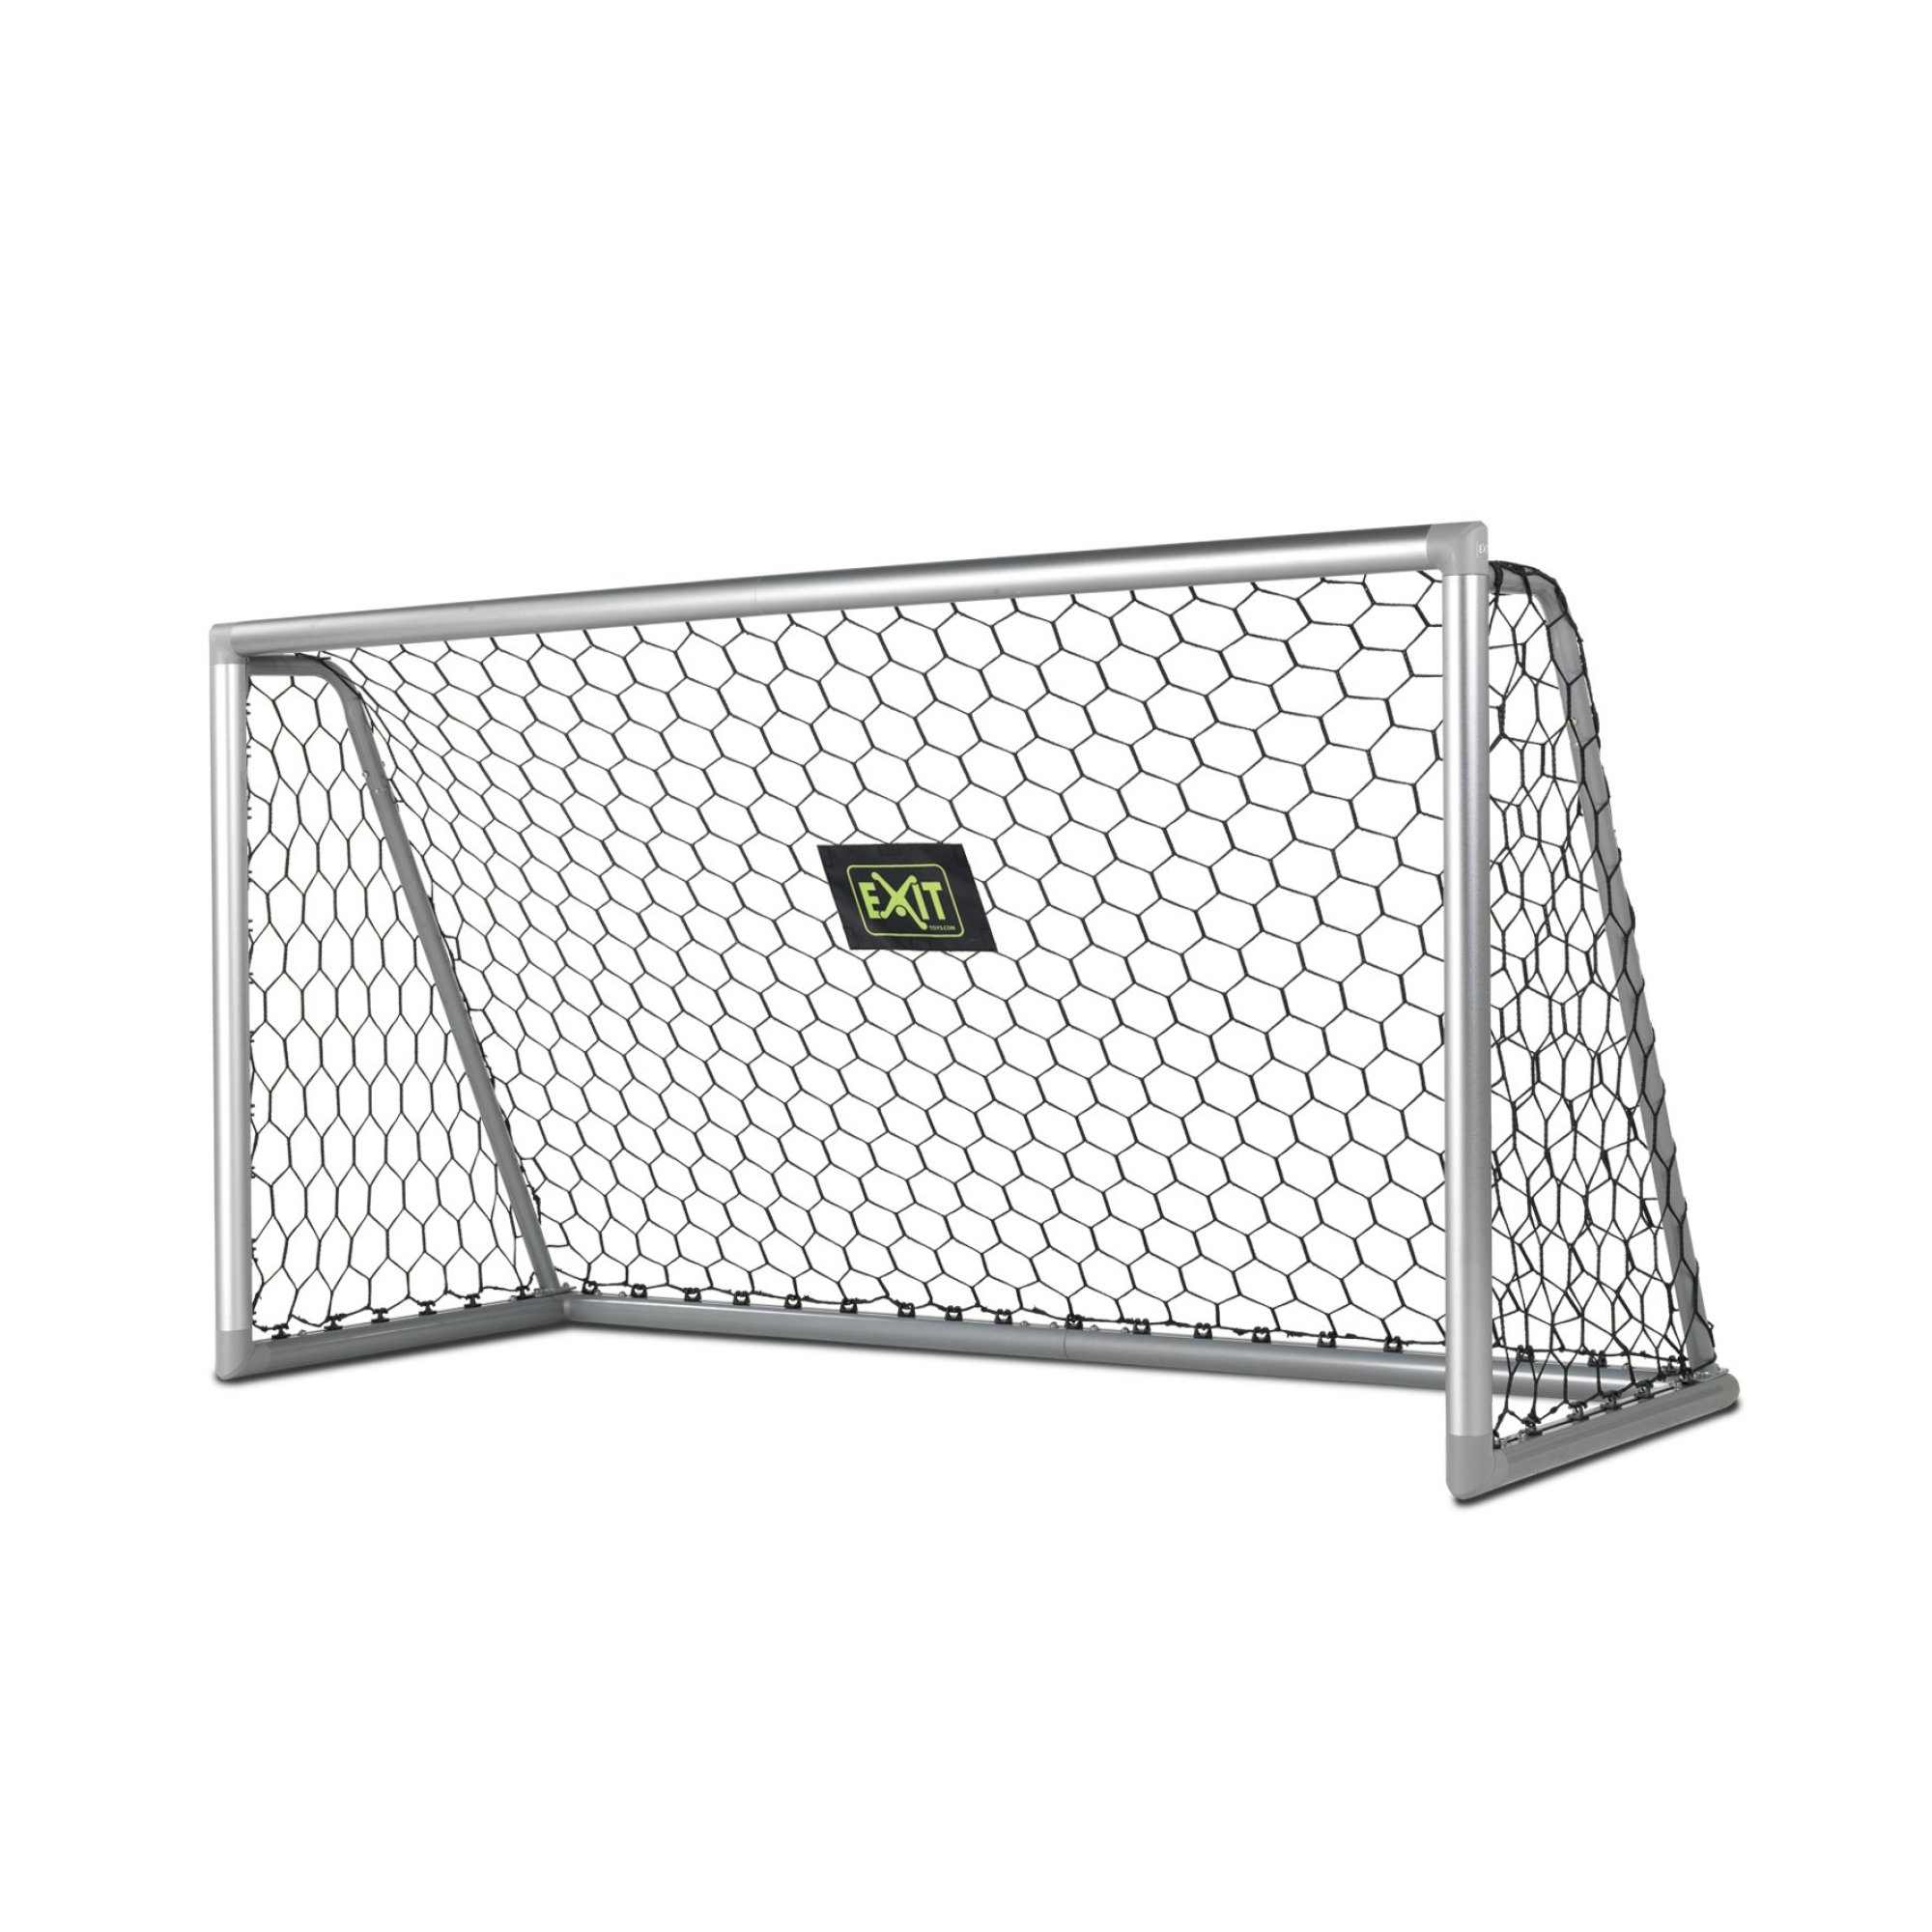 EXIT - Scala aluminum football goal (220x120cm) (42.22.12.00)